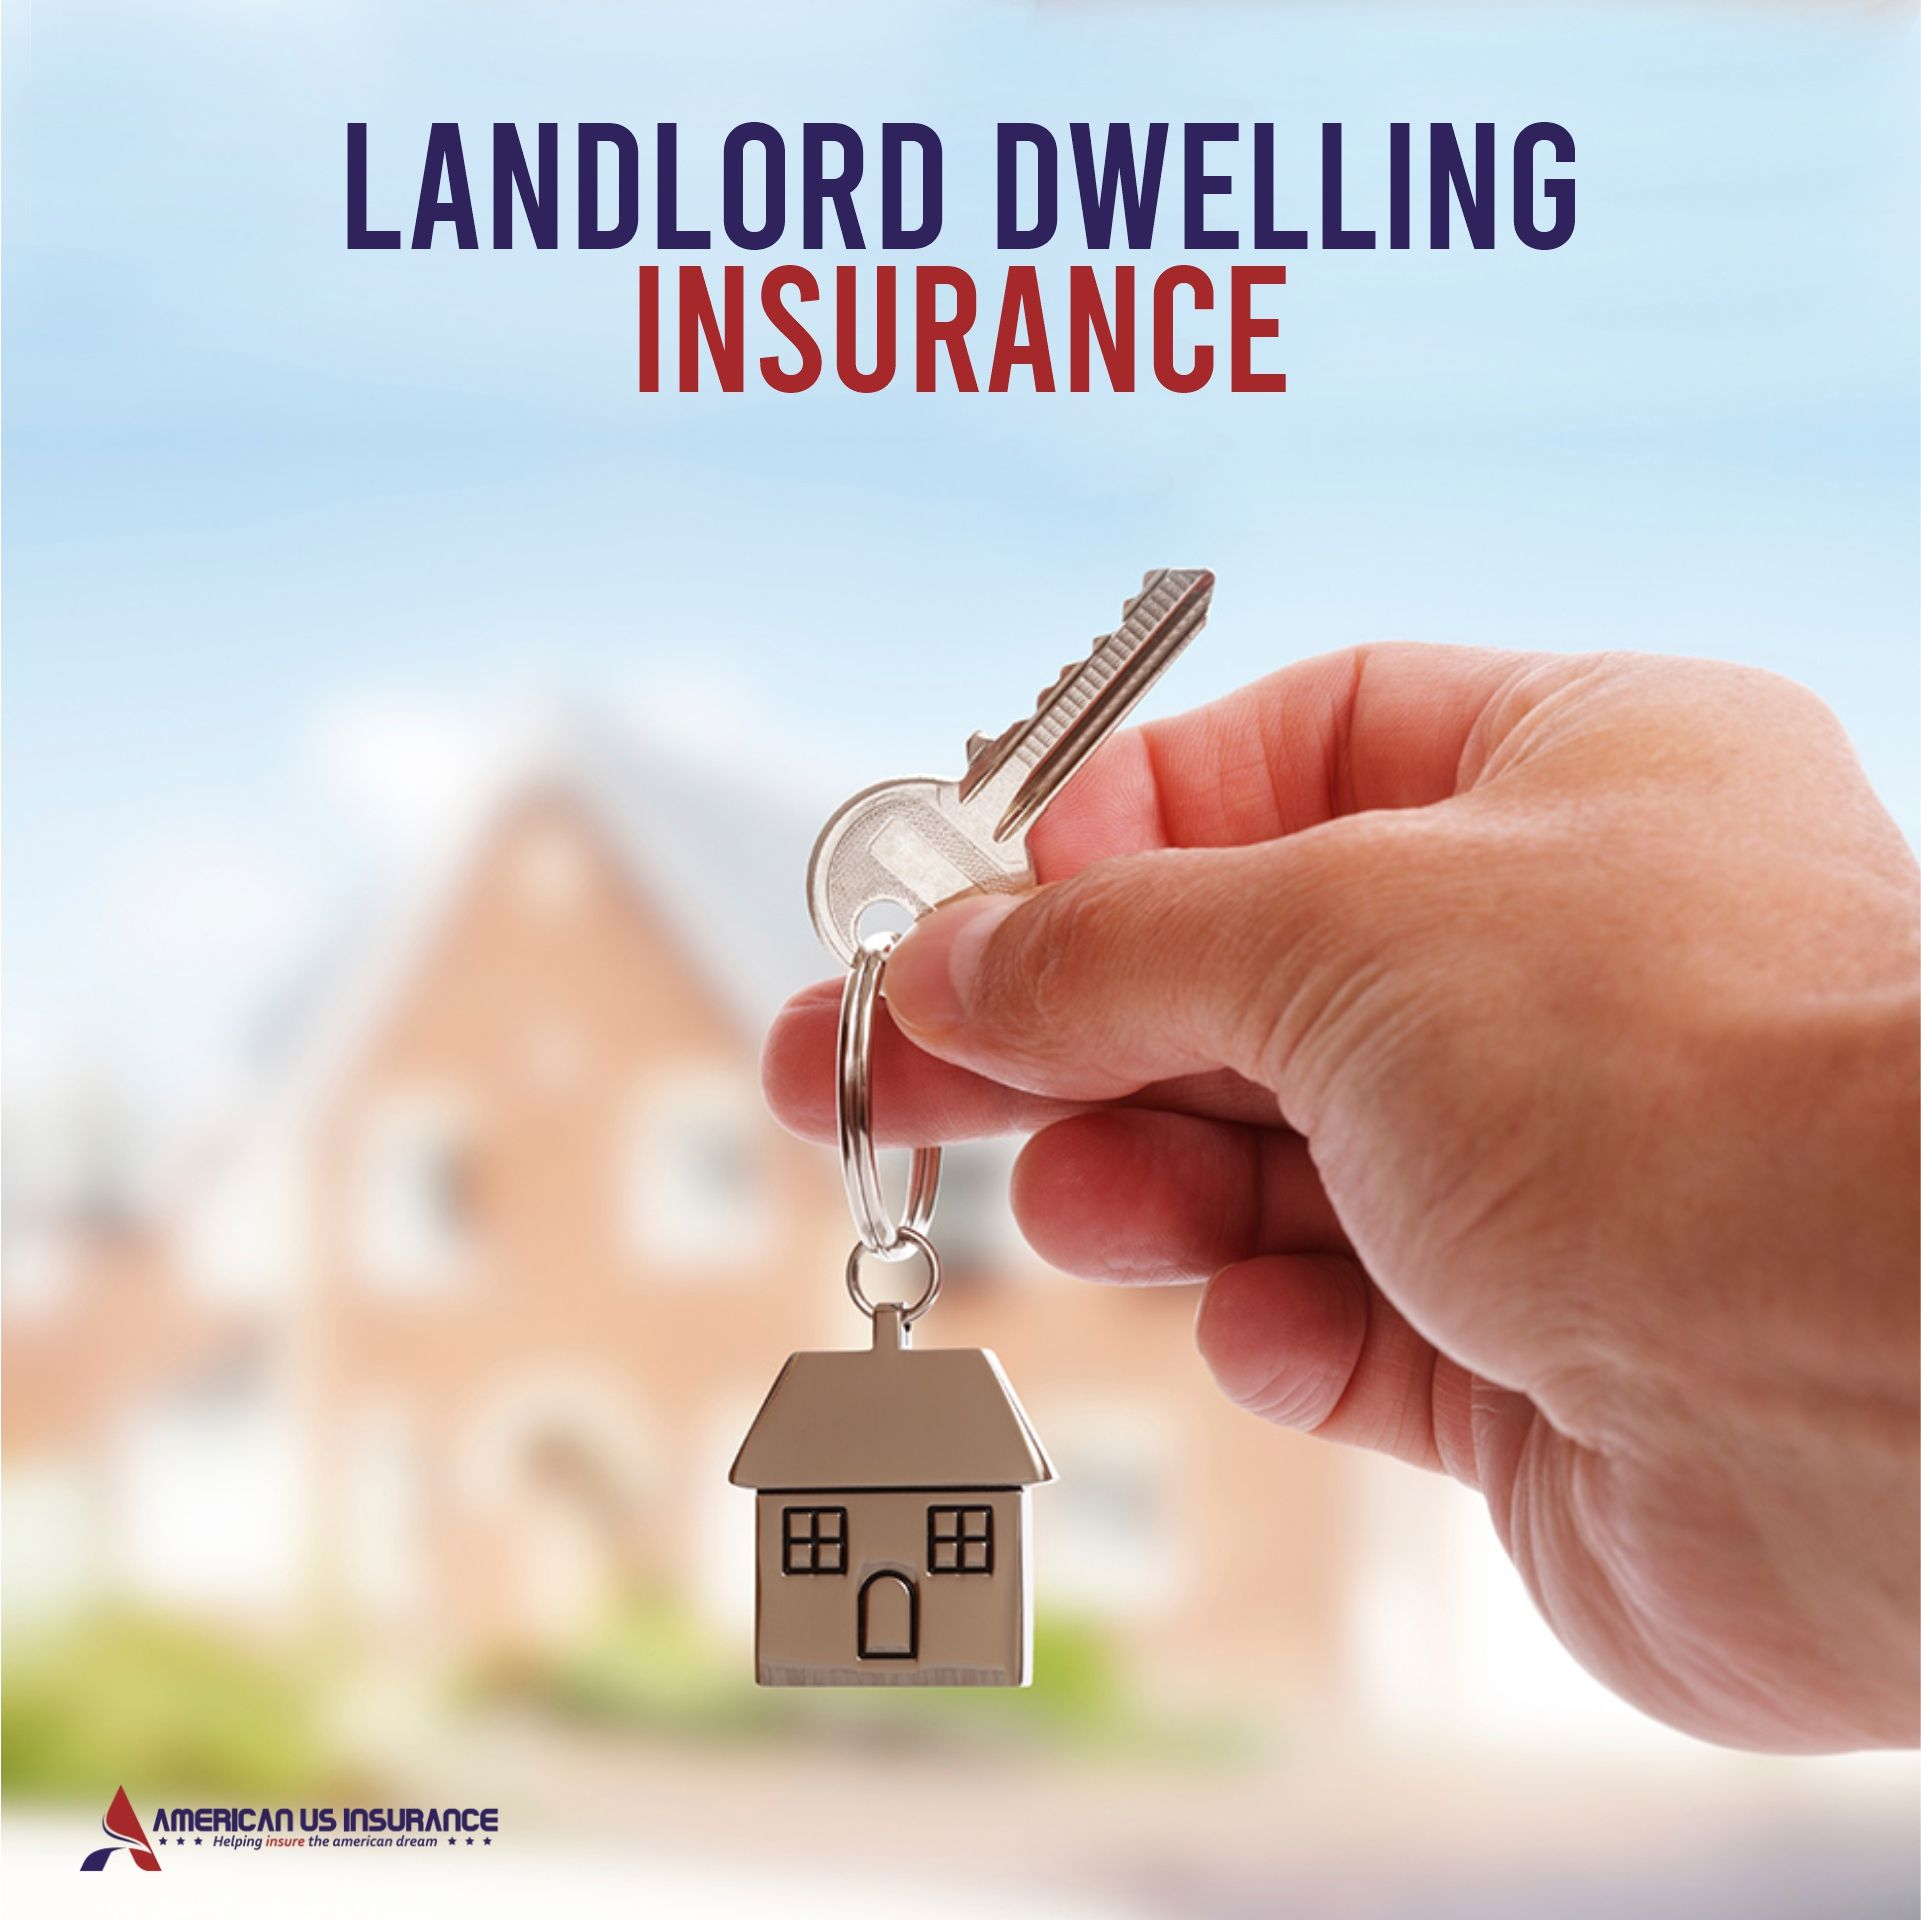 Landlord Or Dwelling Insurance Covers Those Property Owners That Rent Out One Or More Of Their Properties Buying Property Real Estate Houses Property For Rent